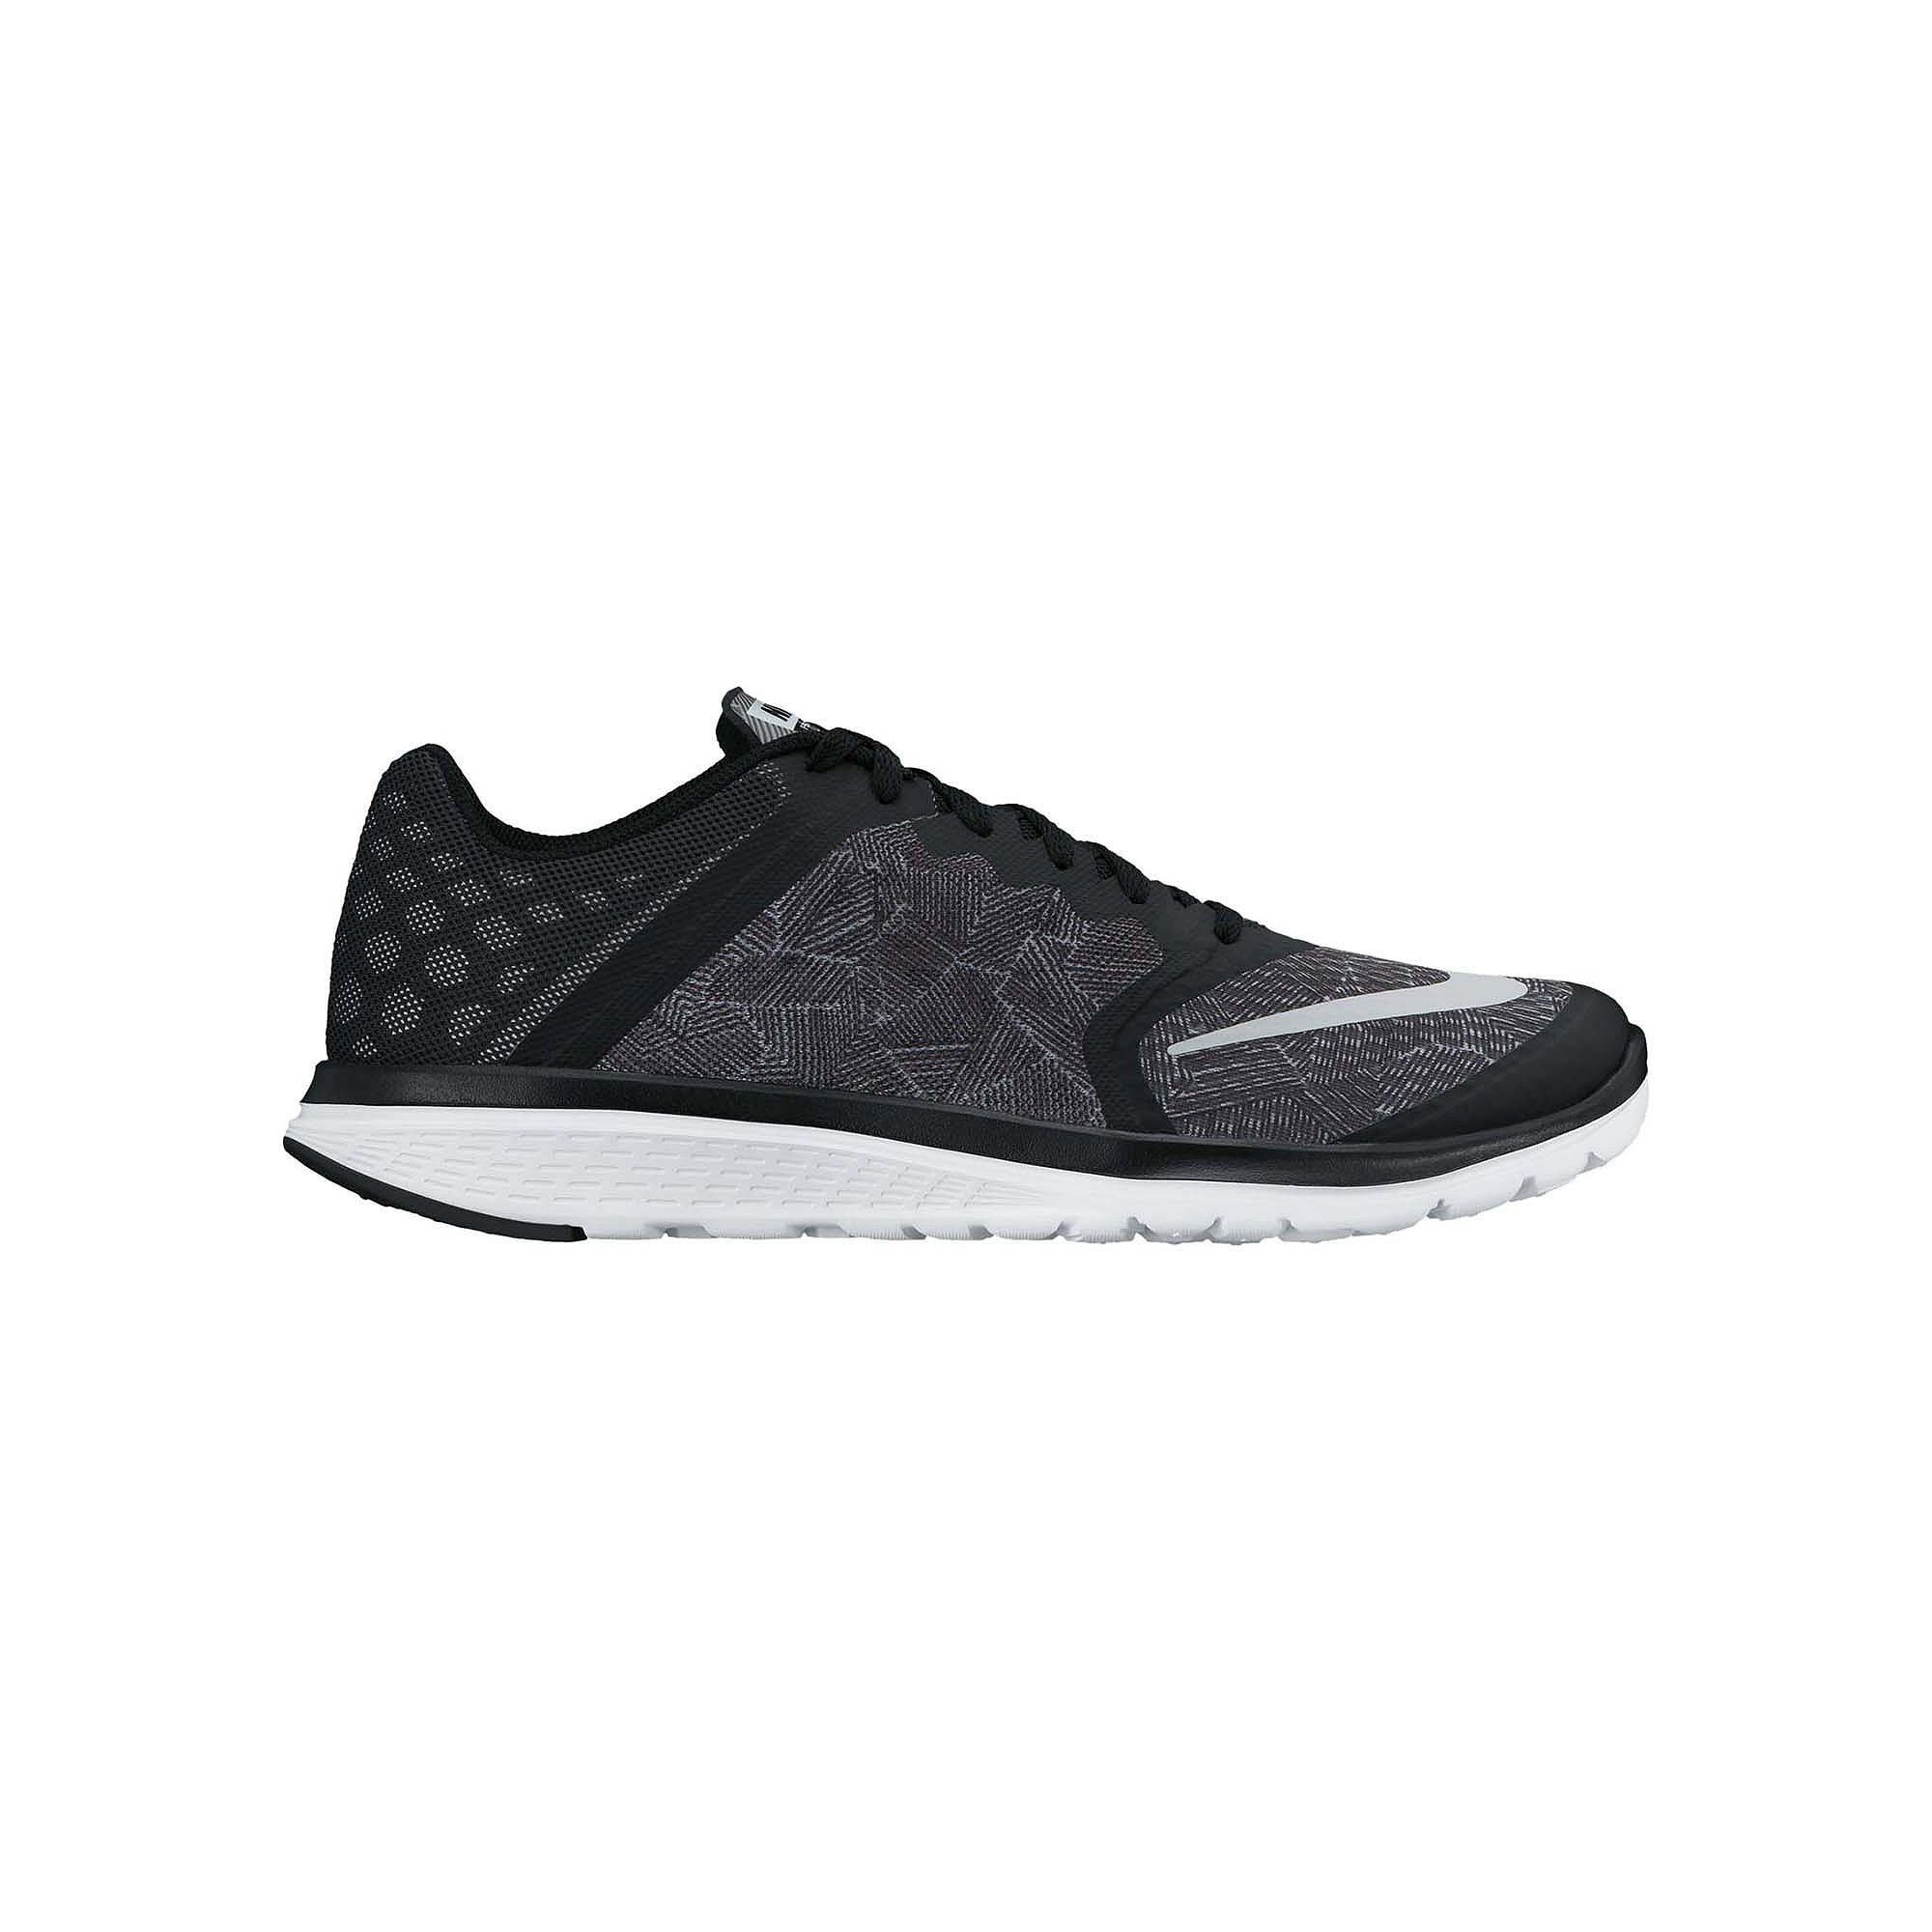 UPC 886550978712 product image for Nike FS Lite Run 3 Mens Running Shoes |  upcitemdb.